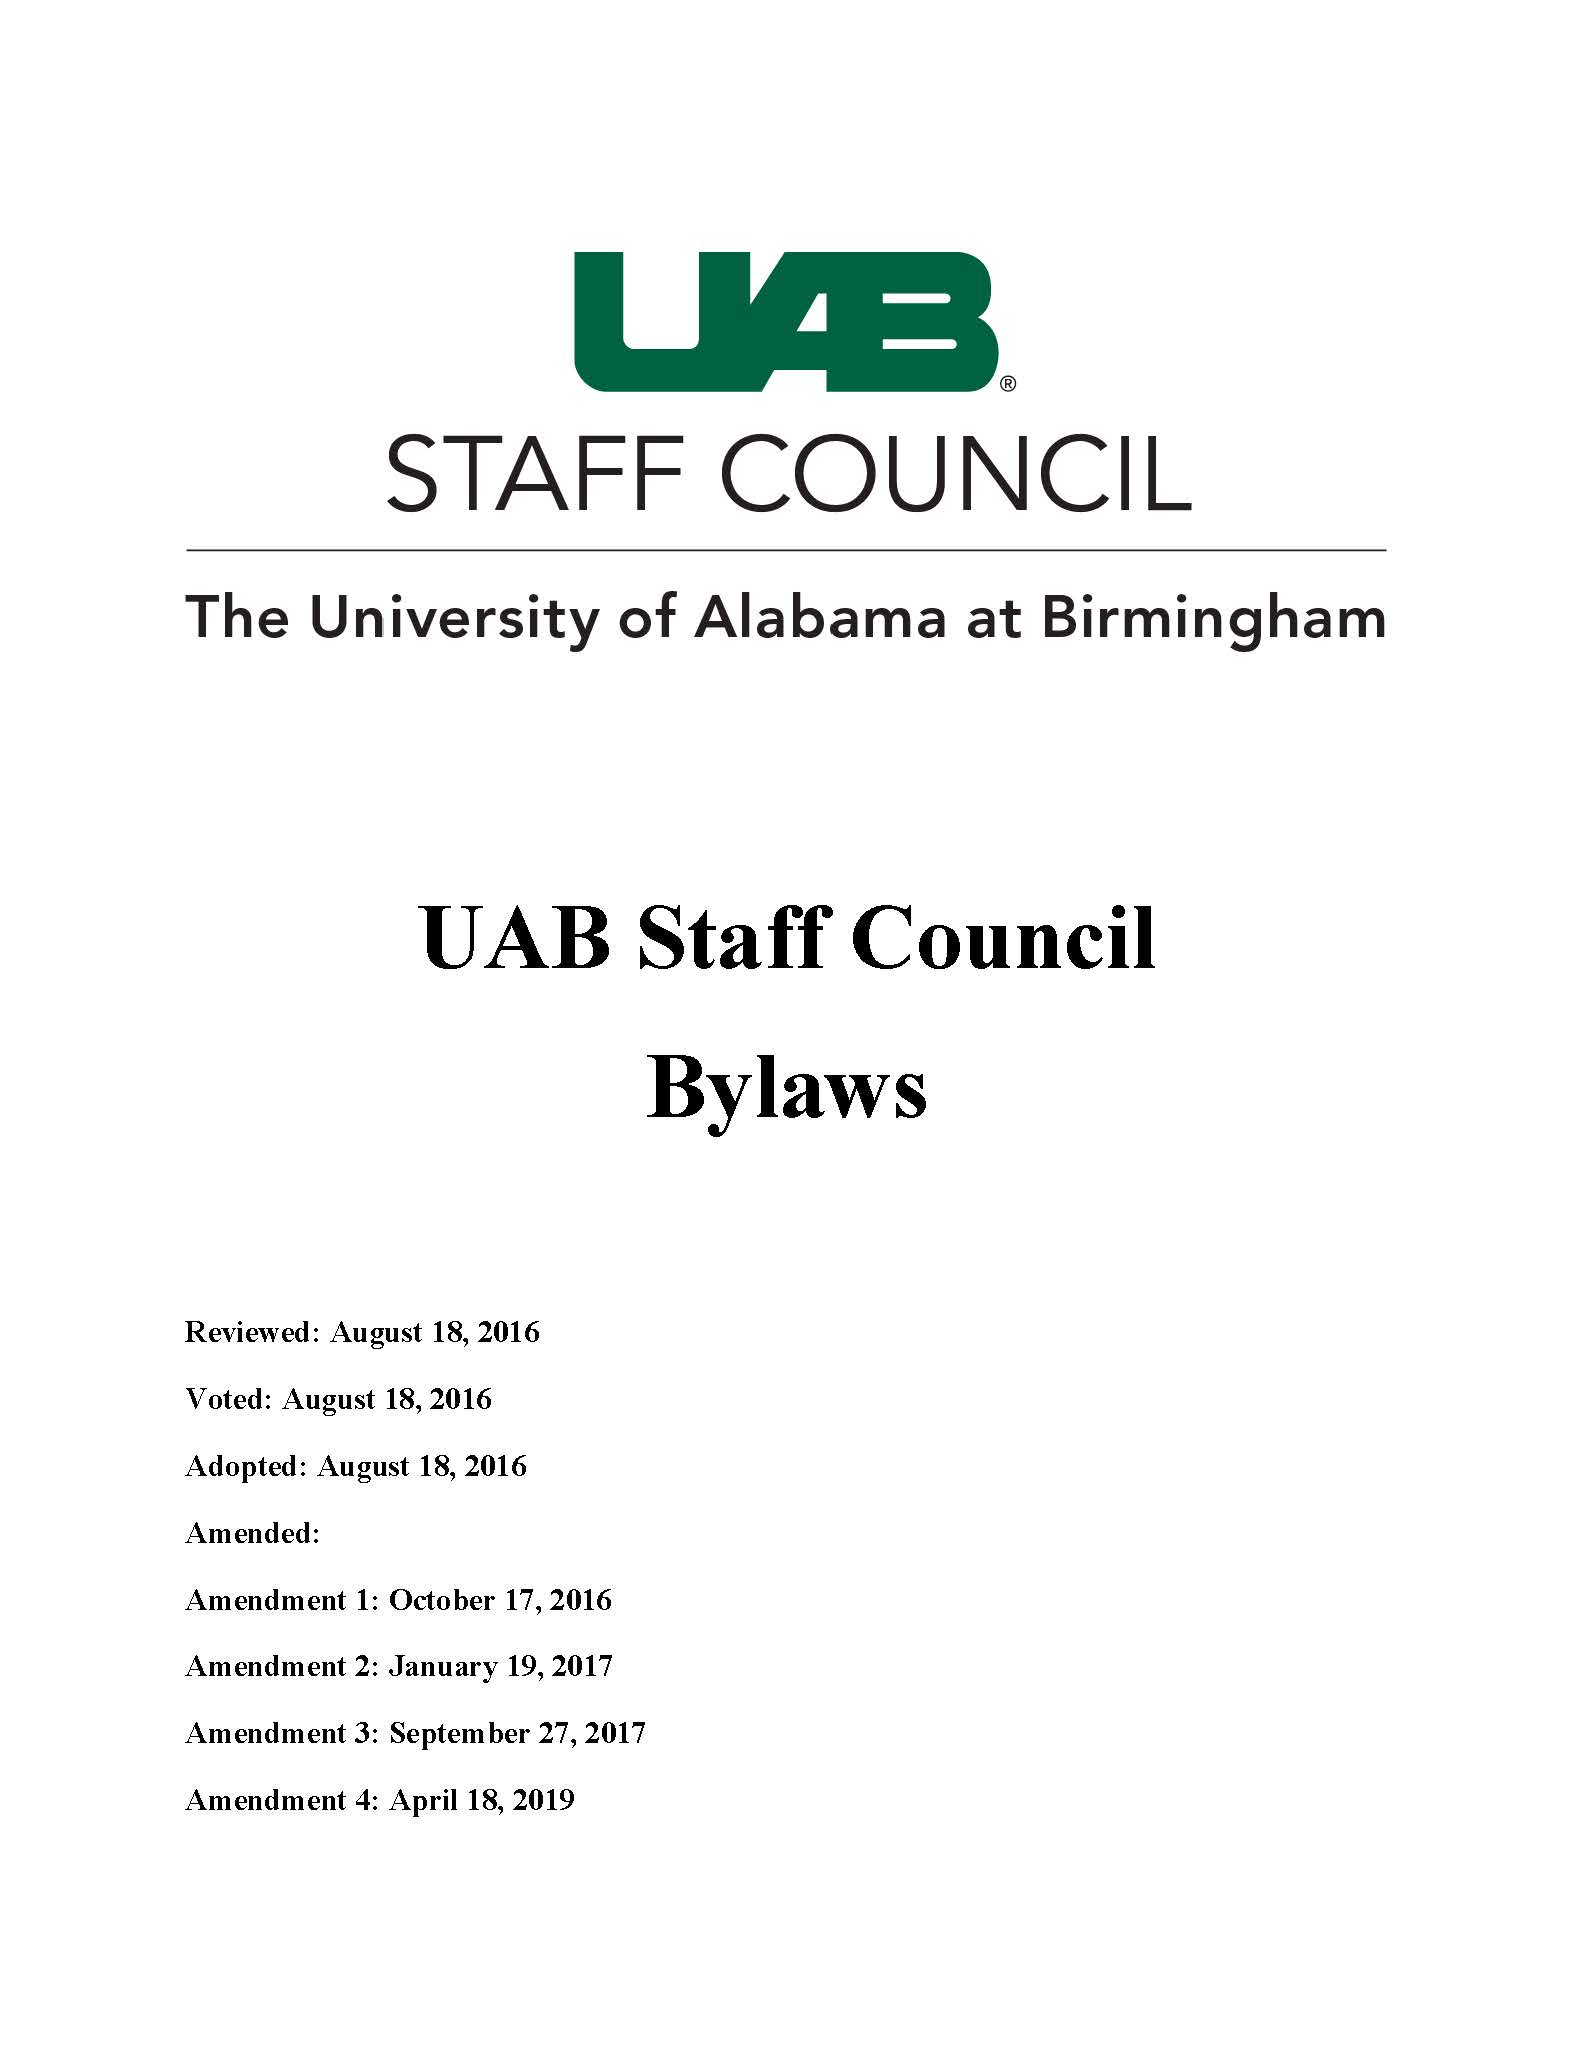 UAB Staff Council Bylaws Amendment 4 FINAL Page 01